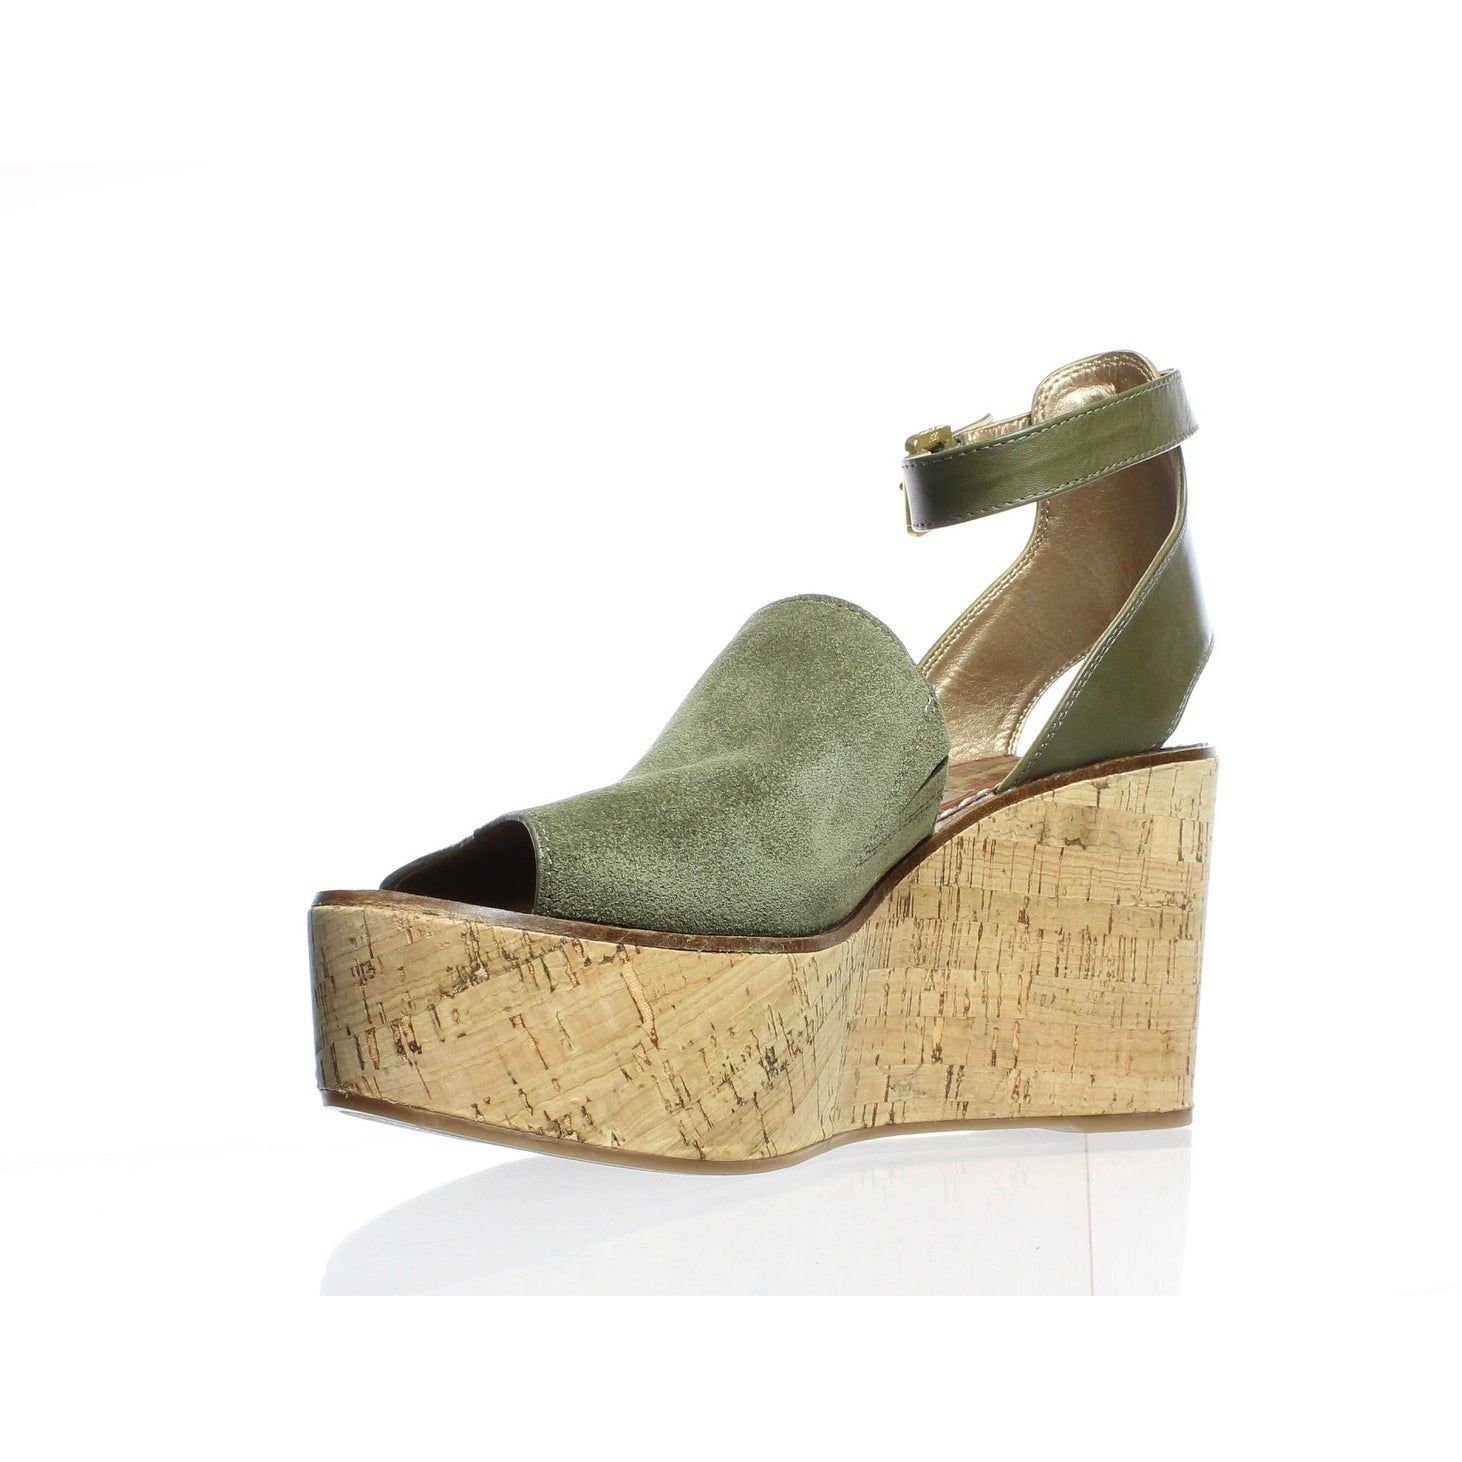 79e275d74 Shop Sam Edelman Womens Devin Green Ankle Strap Heels Size 10 - On Sale -  Free Shipping On Orders Over  45 - Overstock - 25586083